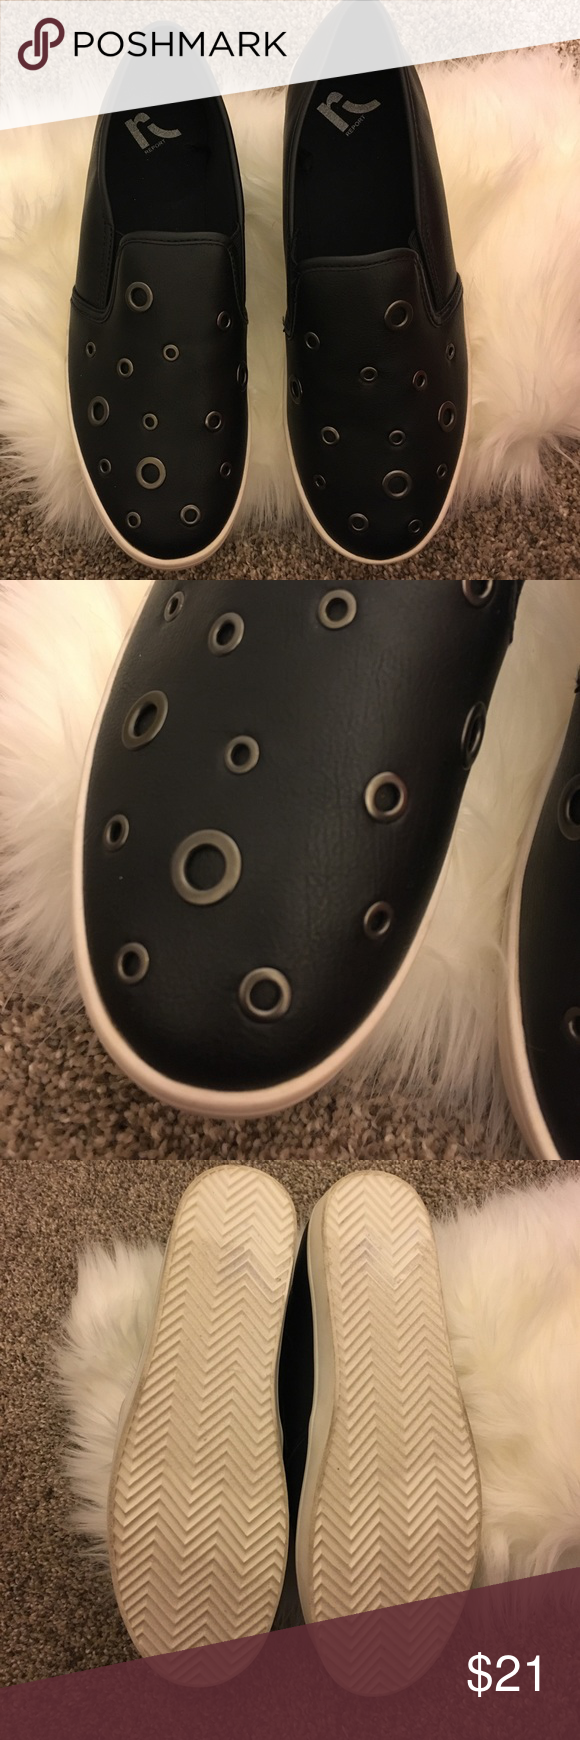 Slip on sneakers with metal ring details New without a box! Scuffs on the white part of the shoe due to being stored with other shoes in a bin! Report Shoes Sneakers